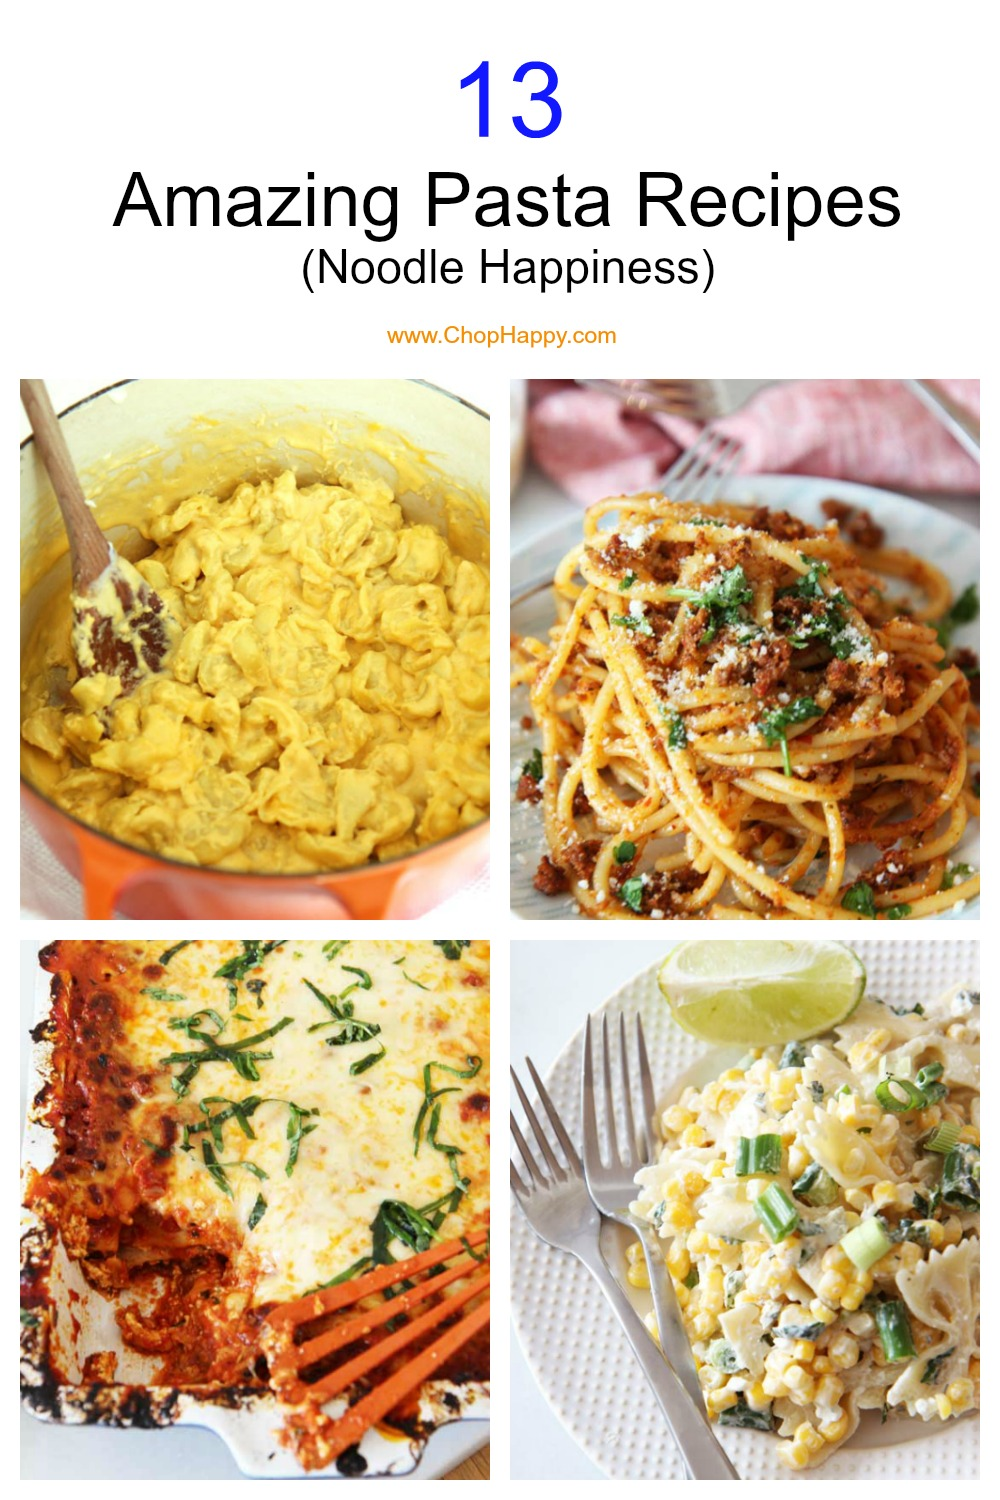 13 Amazing Pasta Recipes. Grab your lasagna, mac and cheese, carbonara, spaghetti, and pasta salads. Easy weeknight dinner fun. www.ChopHappy.com #pastarecipes #pasta